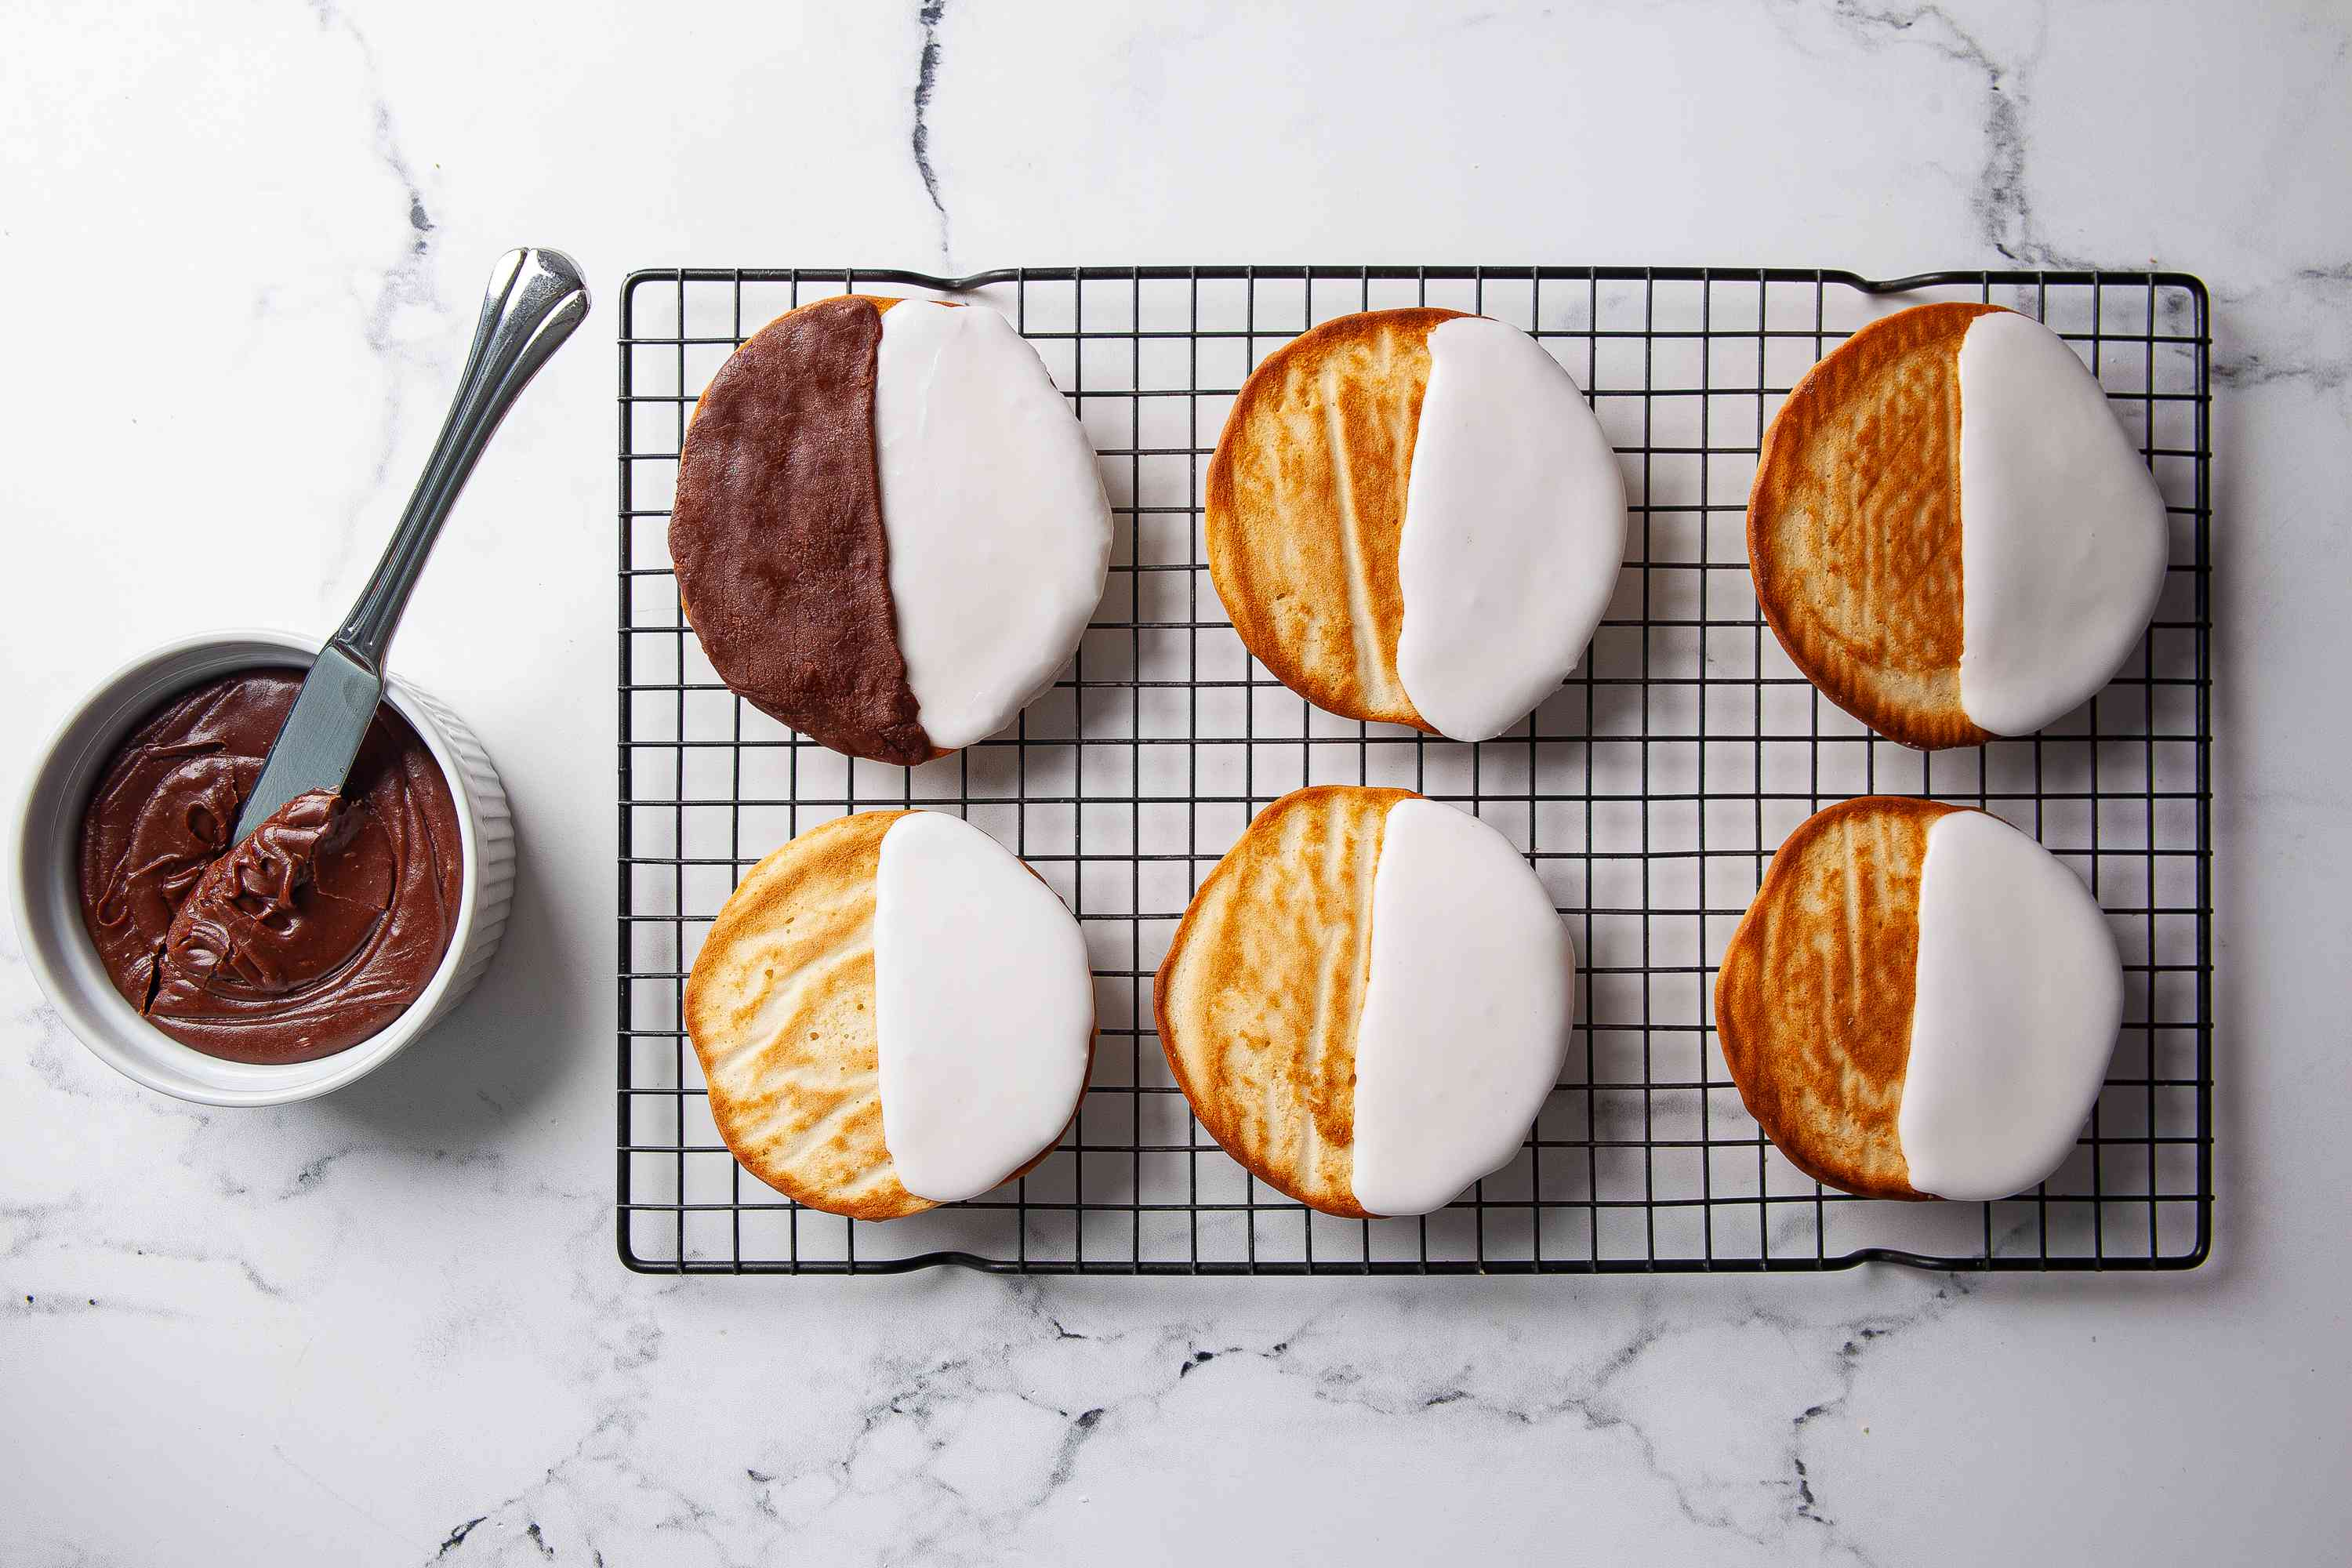 Decorate the Black and White Cookies